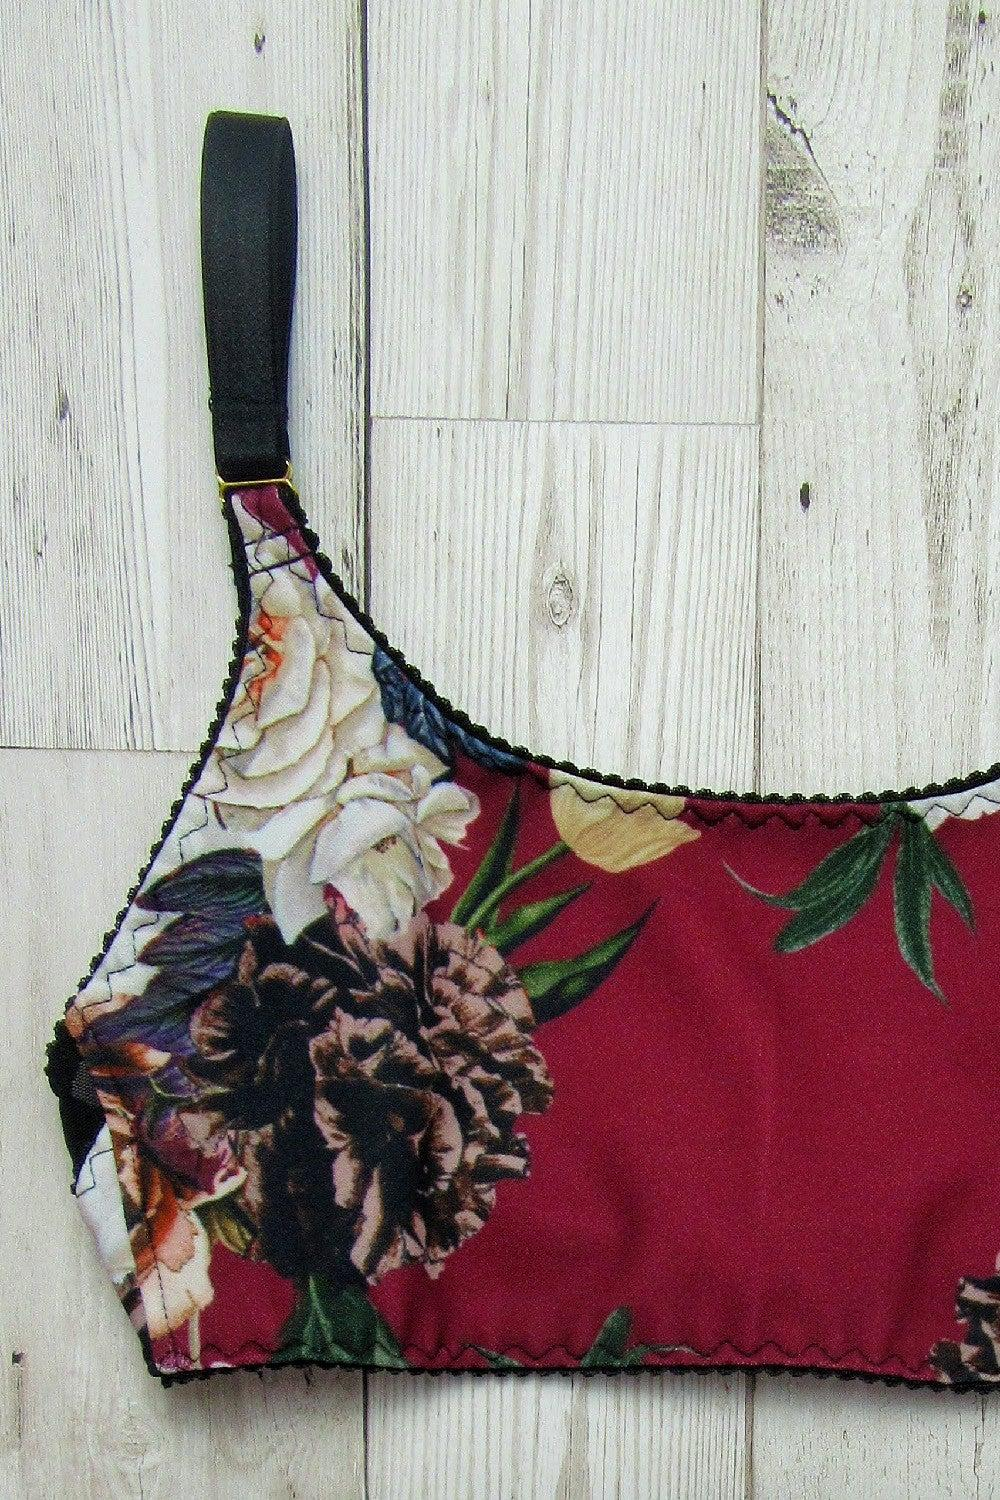 Kelly crop top bra in burgundy roses fabric print by ColieCo